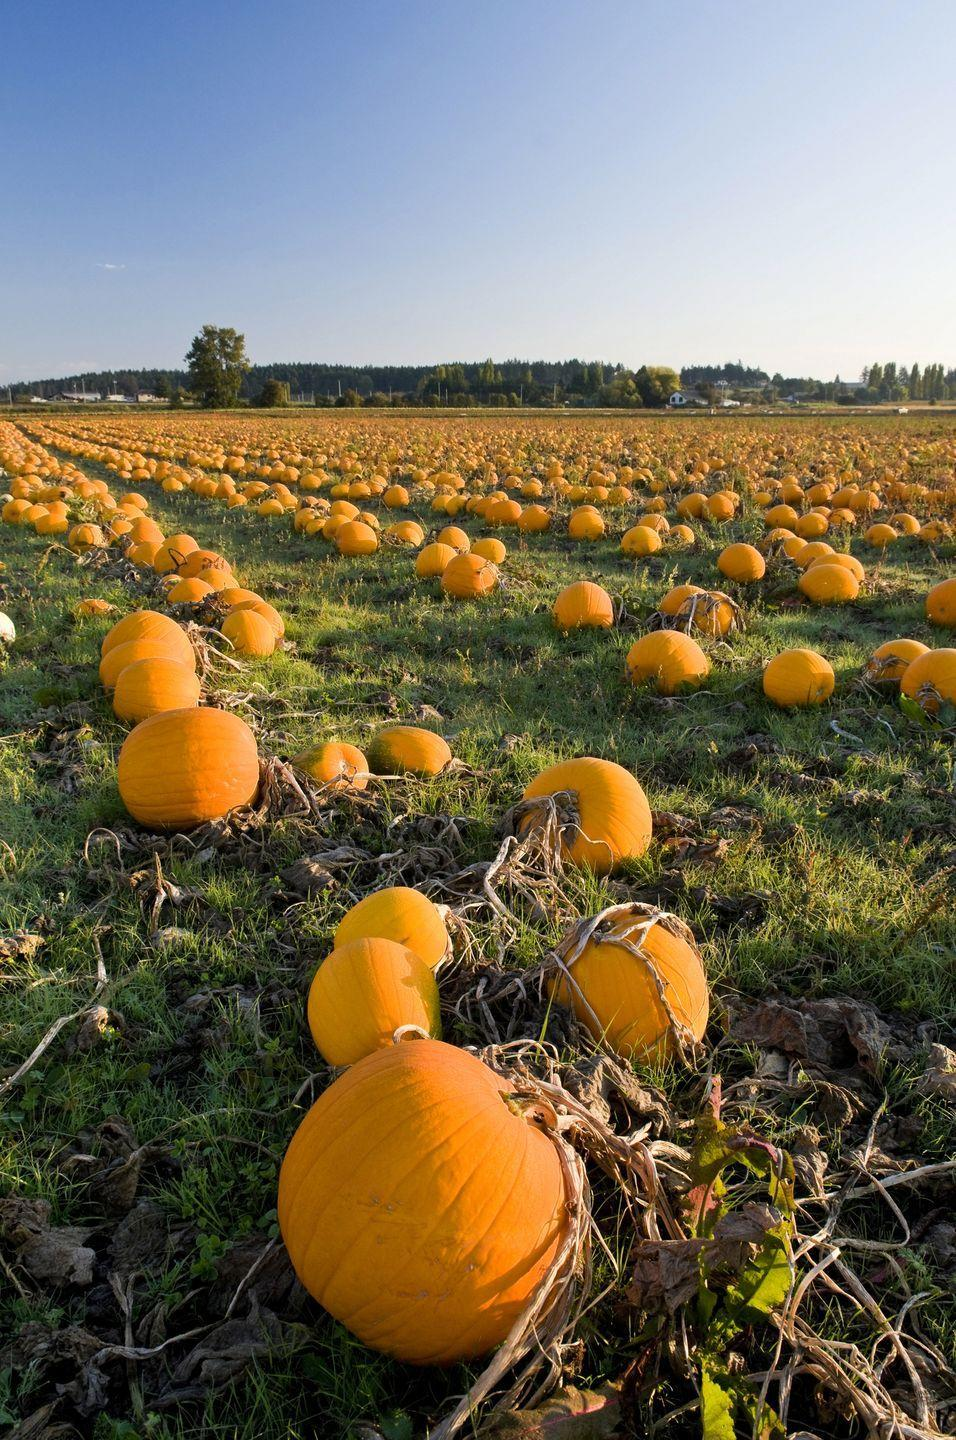 """<p><strong>Blue Ridge, Virginia </strong></p><p>We named this """"Best Pumpkin Patch in Virginia"""" in 2018. There are all the classic activities you'd expect at an over-the-top pumpkin patch, but that's just the beginning at <a href=""""http://www.laymanfamilyfarm.com/"""" rel=""""nofollow noopener"""" target=""""_blank"""" data-ylk=""""slk:Layman Family Farms"""" class=""""link rapid-noclick-resp""""><strong>Layman Family Farms</strong></a>. With your """"pumpkin tokens,"""" guests can use the corn cannon or the apple blaster (or both!). Tickets are $15 per person. Military and first responders should expect free admission on opening day.</p><p><em>*This photo is not from Layman Family Farms.</em></p>"""